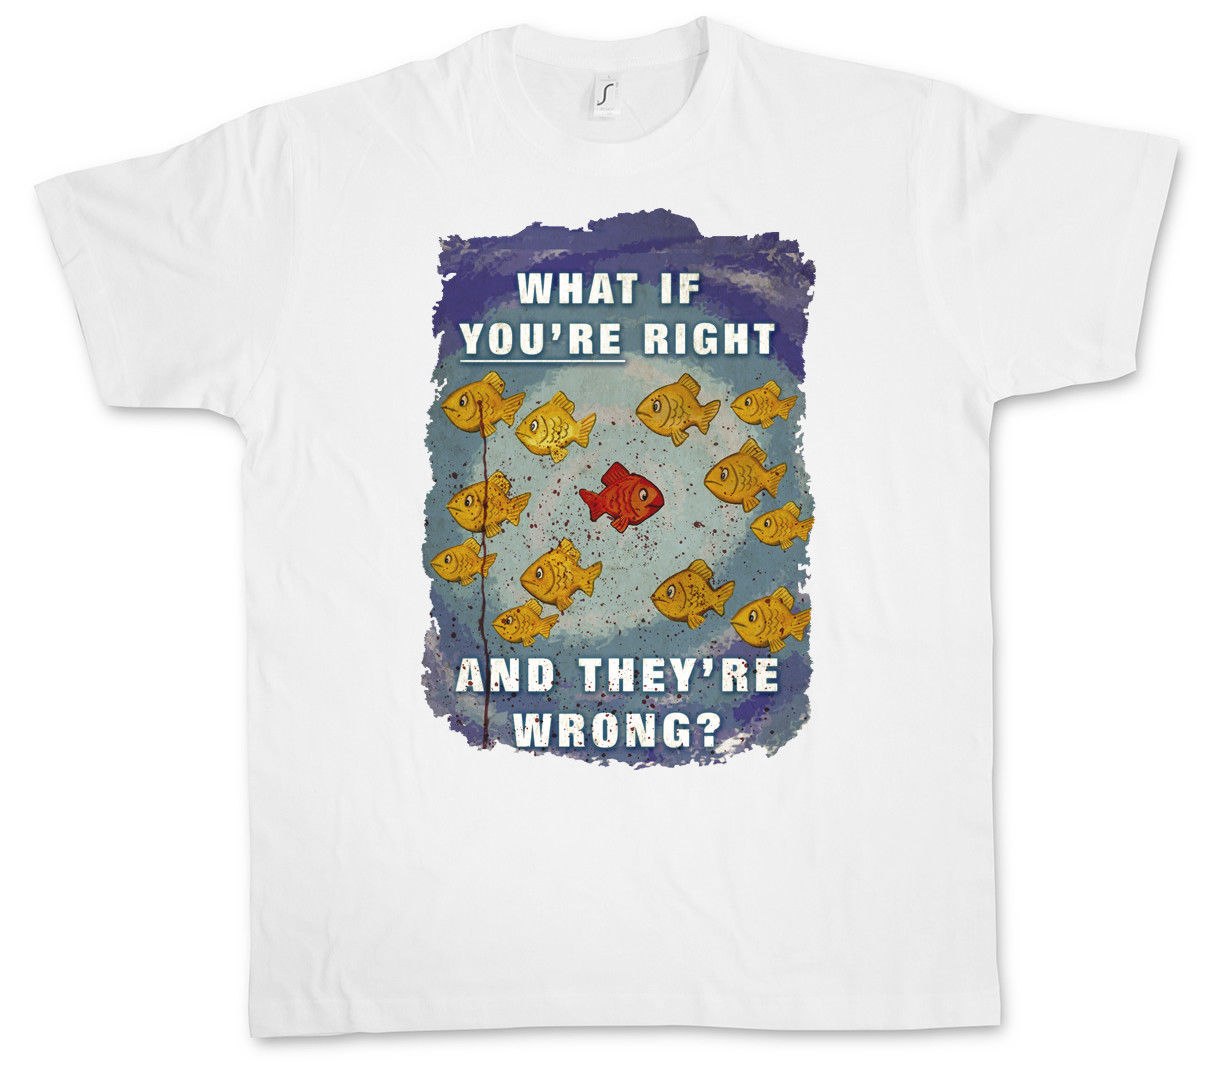 WHAT IF YOU?RE RIGHT AND THEY?RE WRONG DAMEN T-SHIRT Coen TV Series Fargo